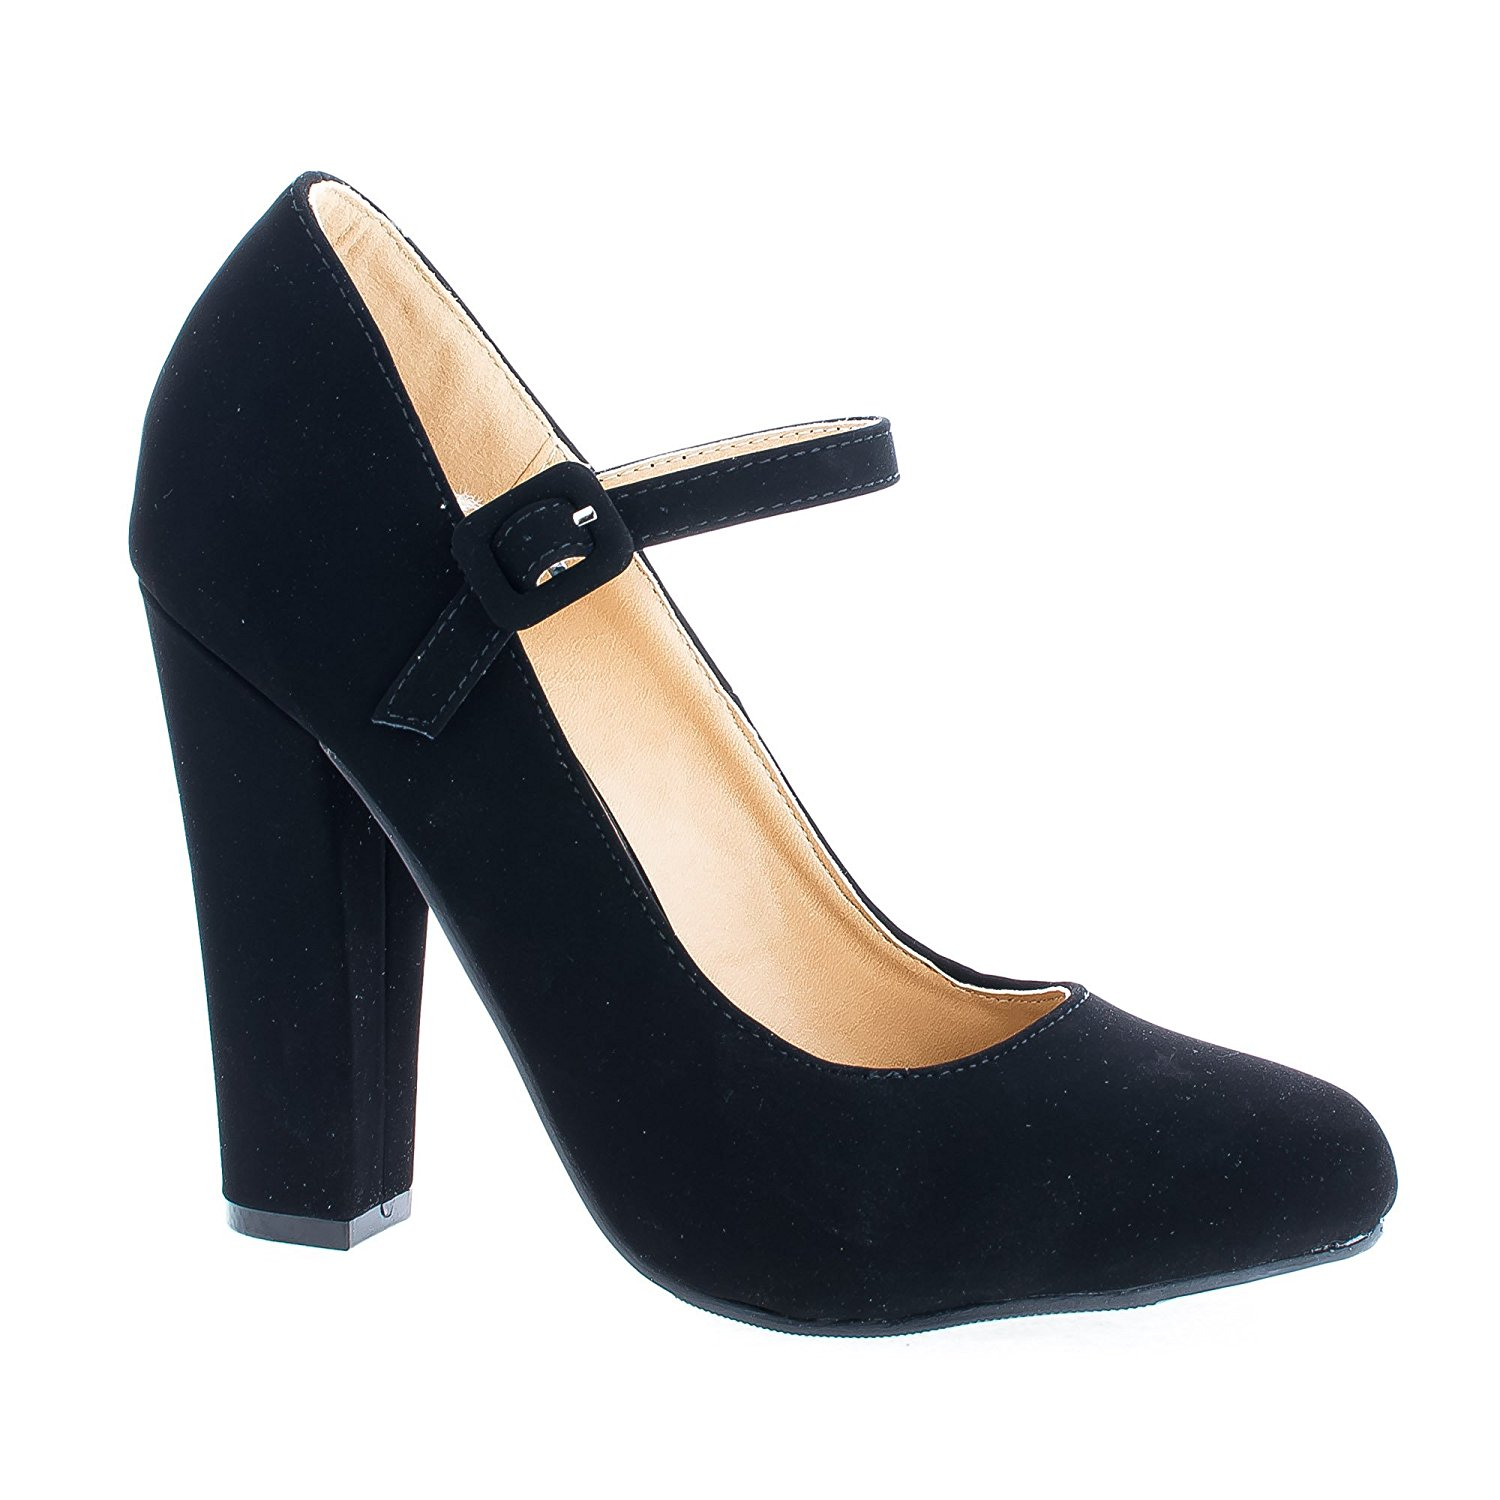 357d2d1c21a Cheap Mary High Heel, find Mary High Heel deals on line at Alibaba.com